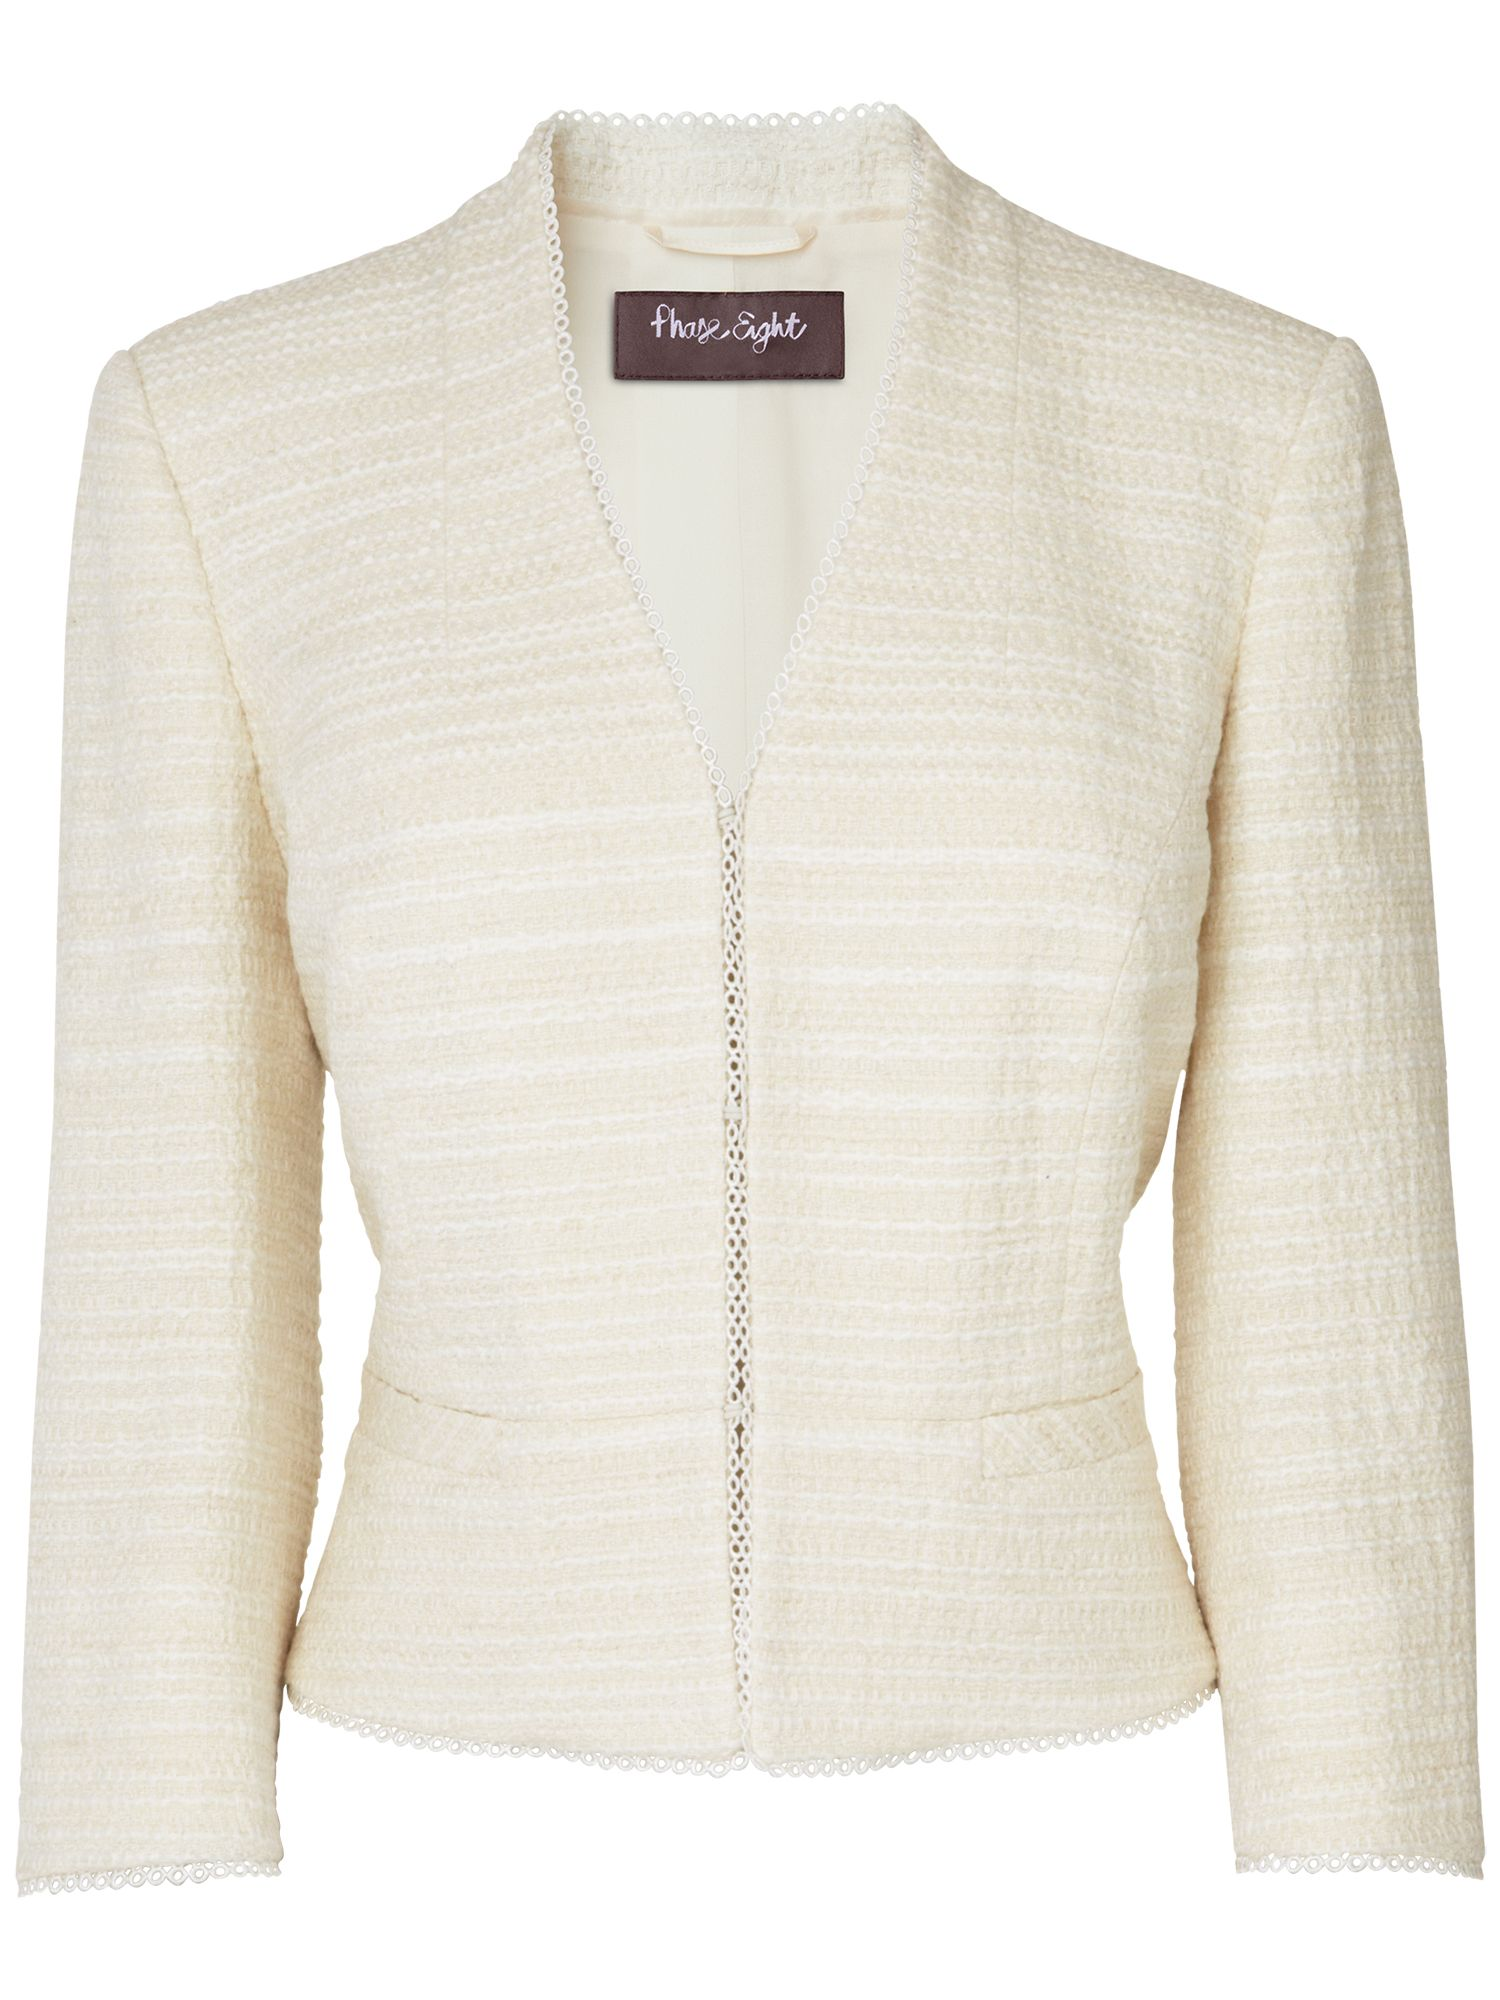 Angelica tweed jacket